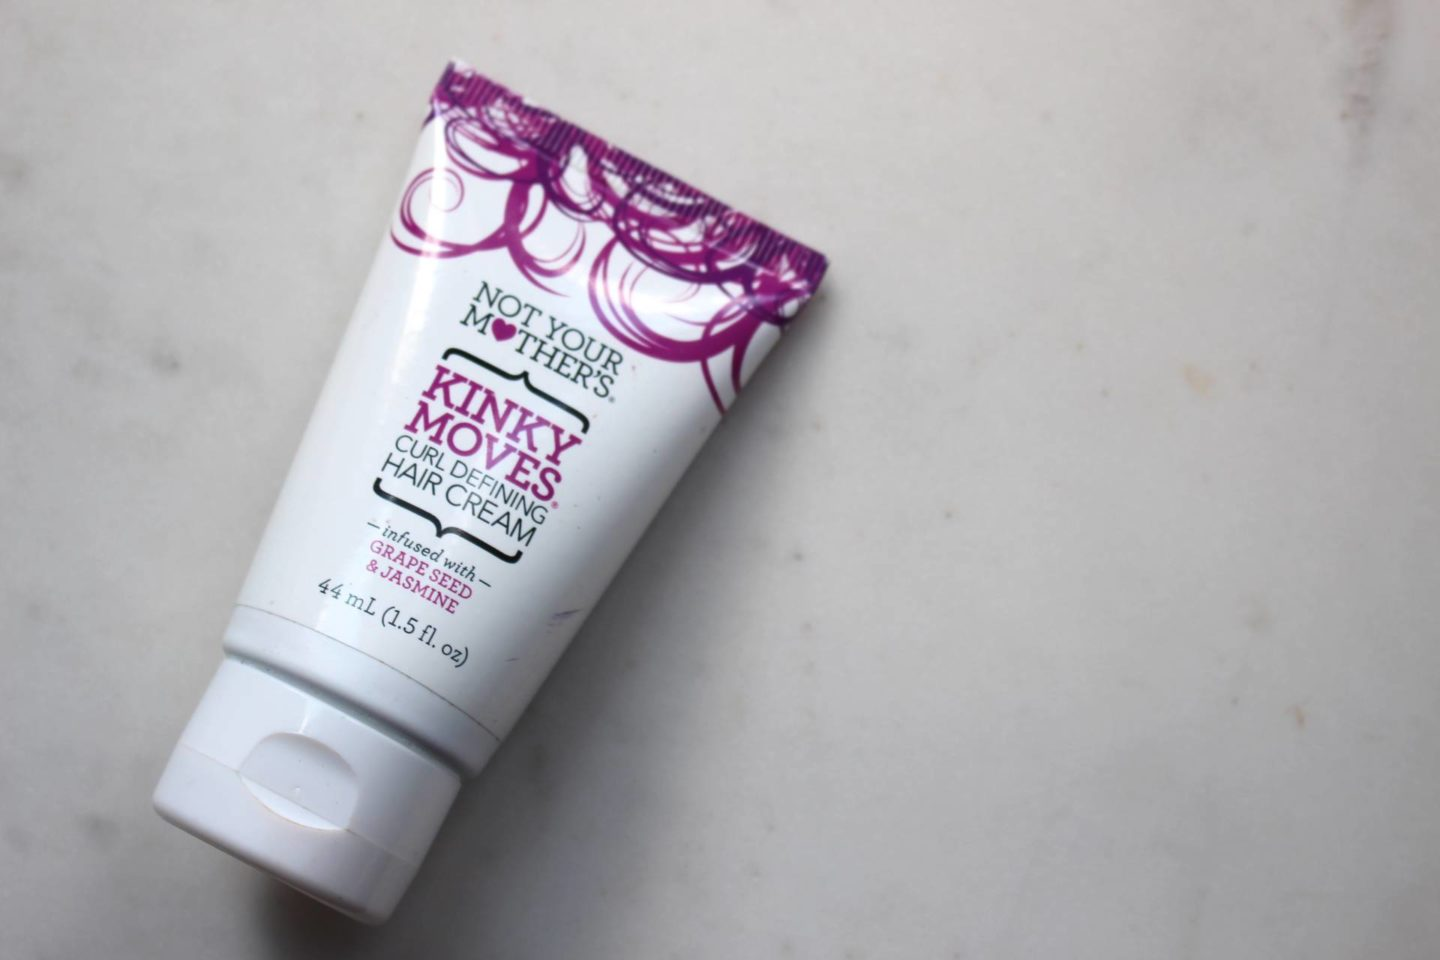 Kinky Moves Curl Defining Hair Cream